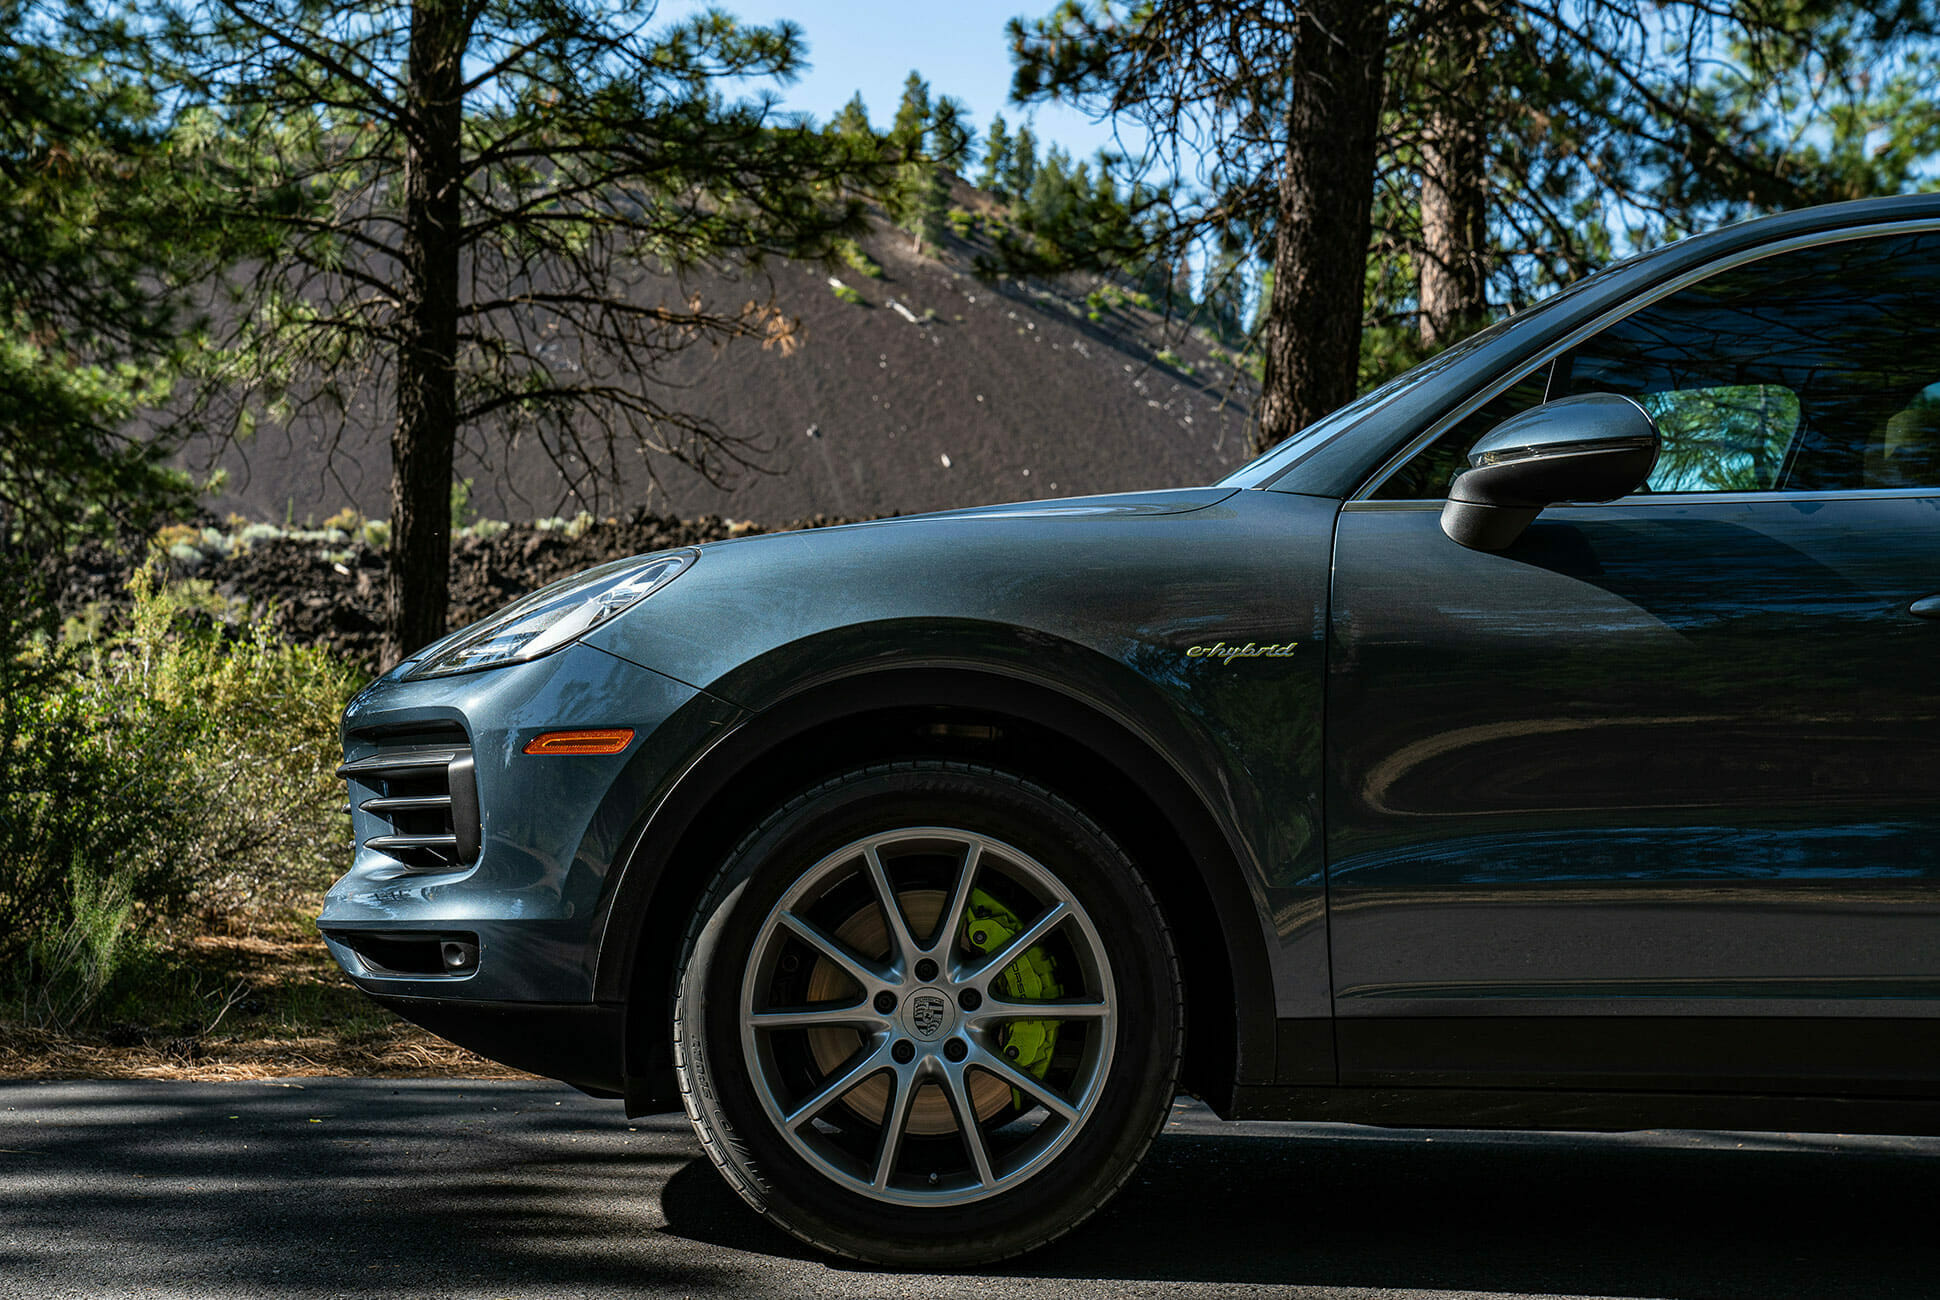 Pair-of-High-Tech-Porsche-Cayenne-Hybrids-gear-patrol-Lava-ambience-1